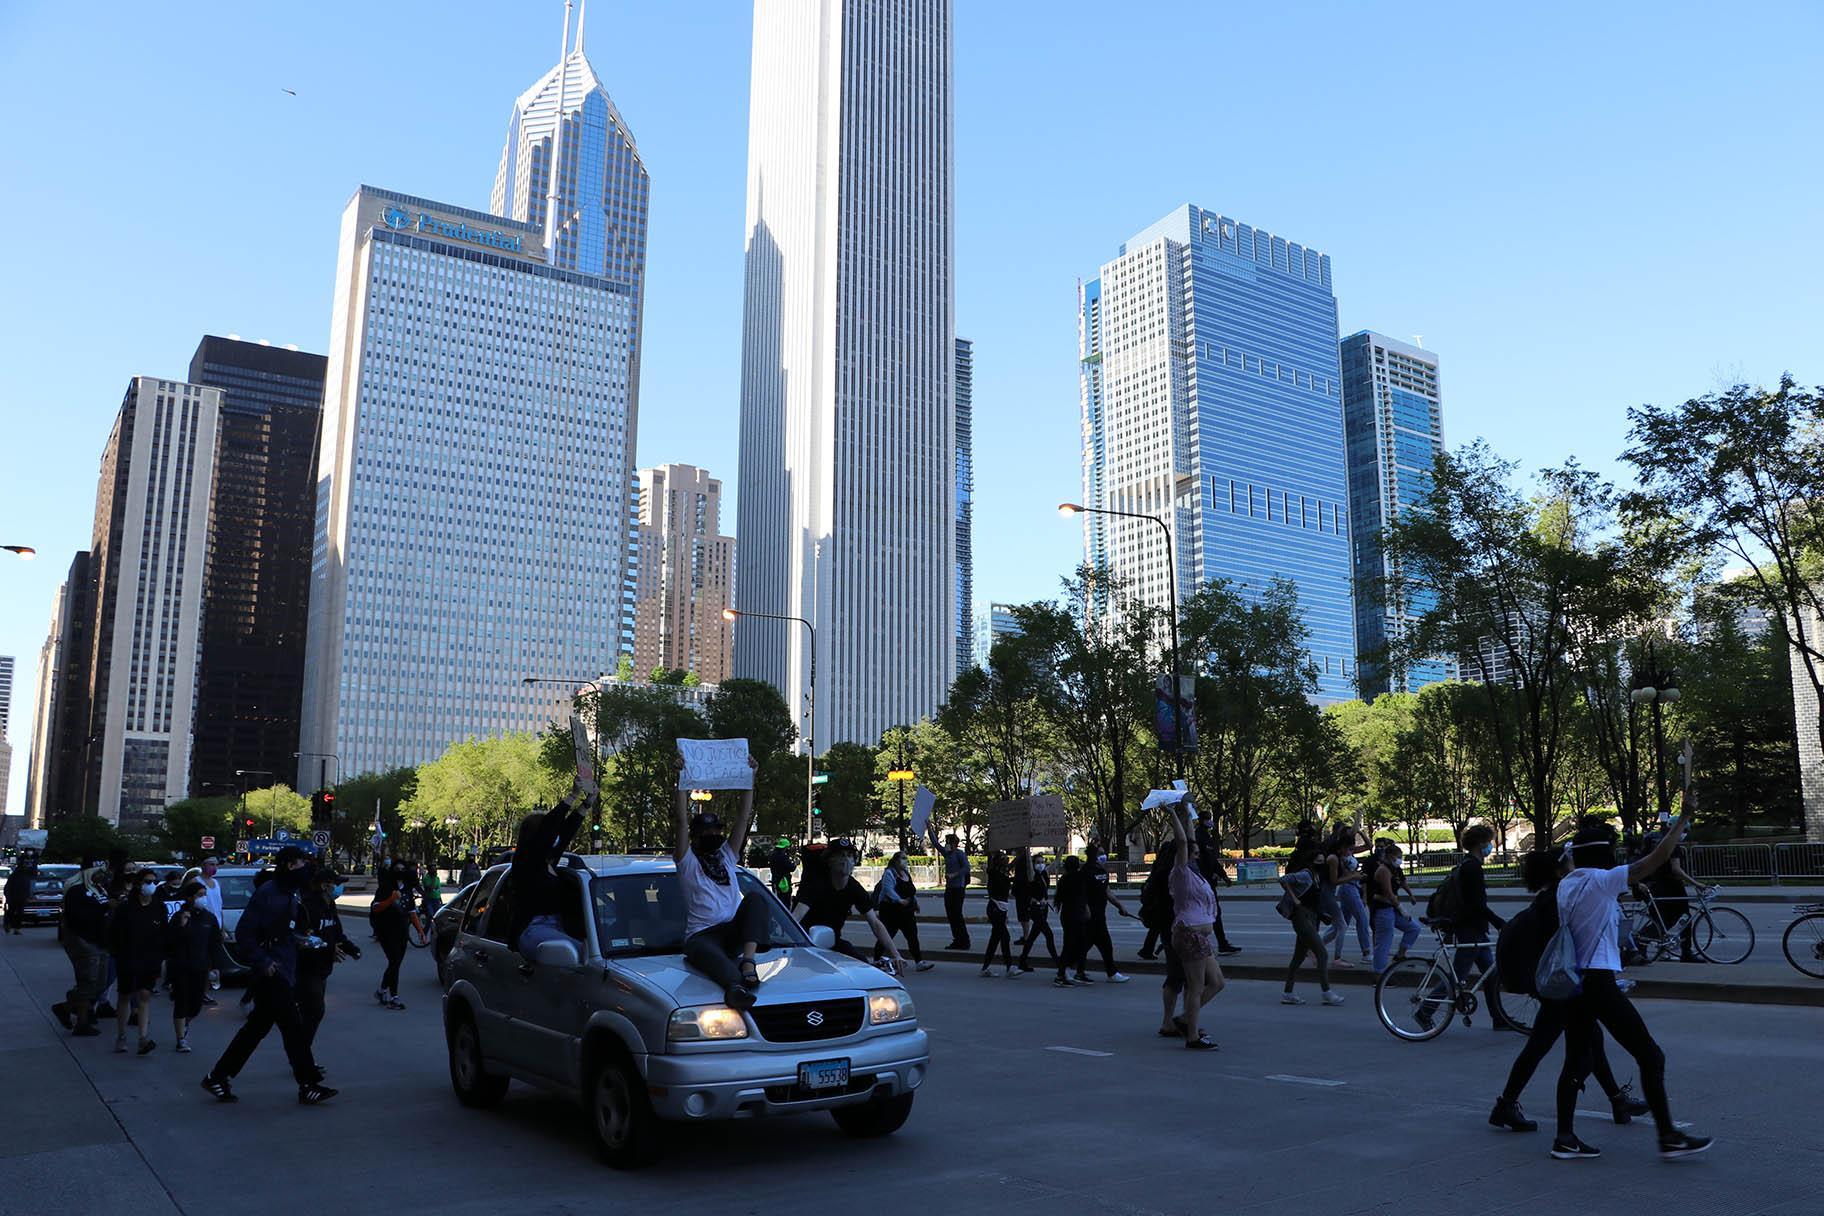 Protesters on foot and in vehicles move southward on Michigan Avenue during protests Saturday in response to the death of George Floyd. (Evan Garcia / WTTW News)